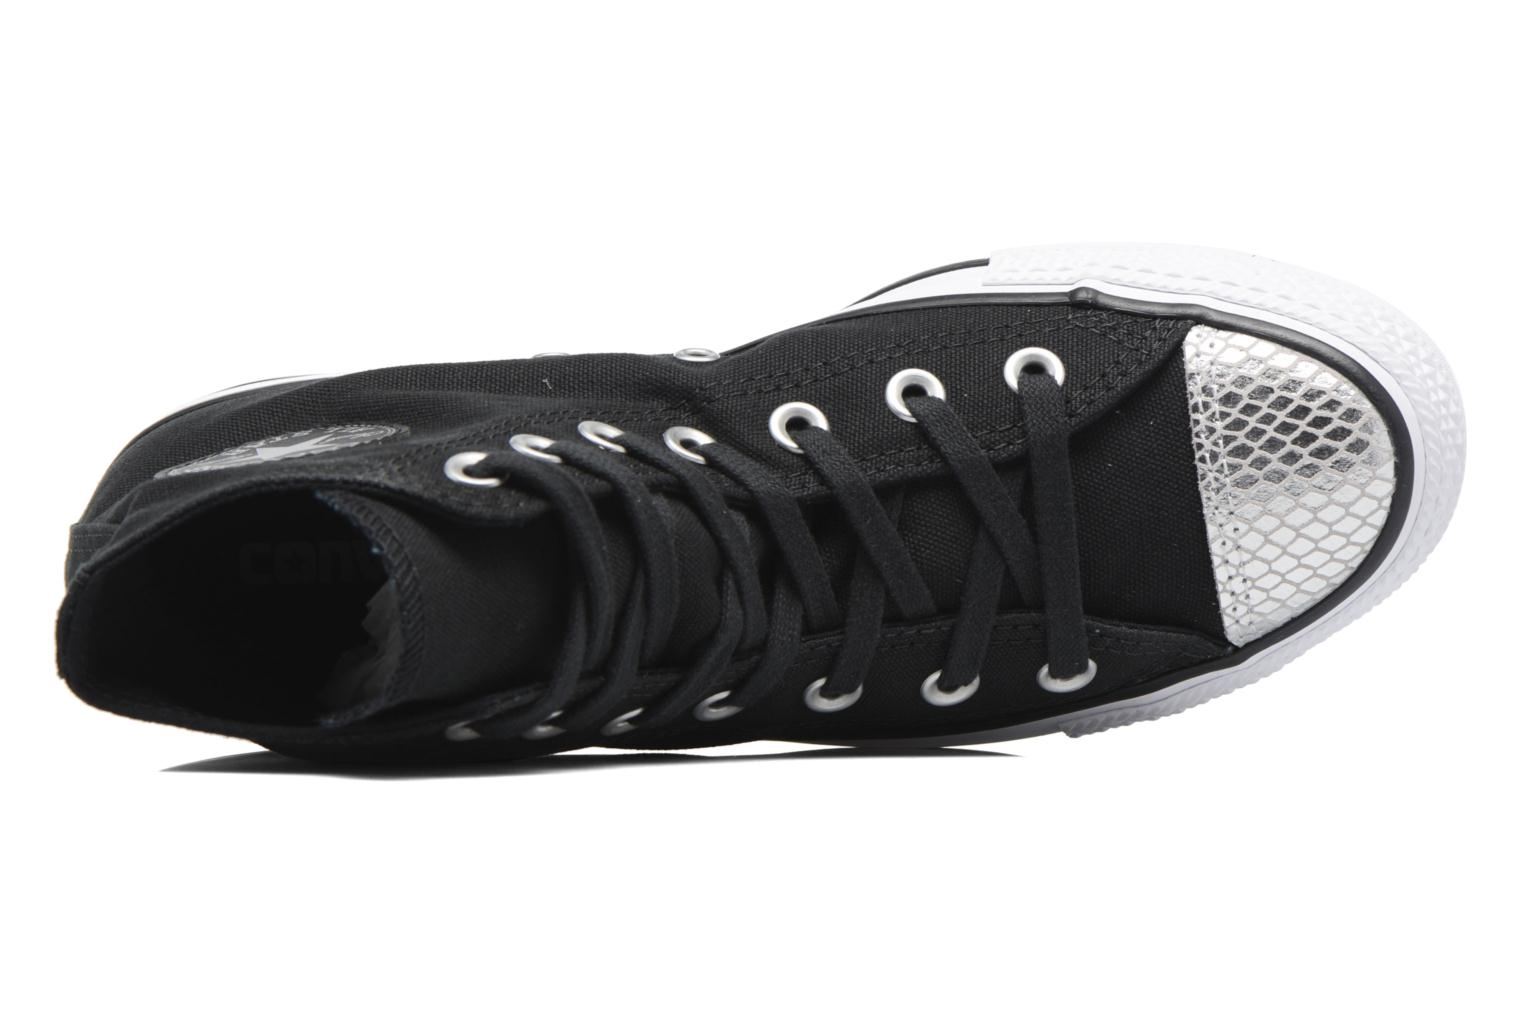 Chuck Taylor All Star Hi Metallic Toecap Black/Silver/Black